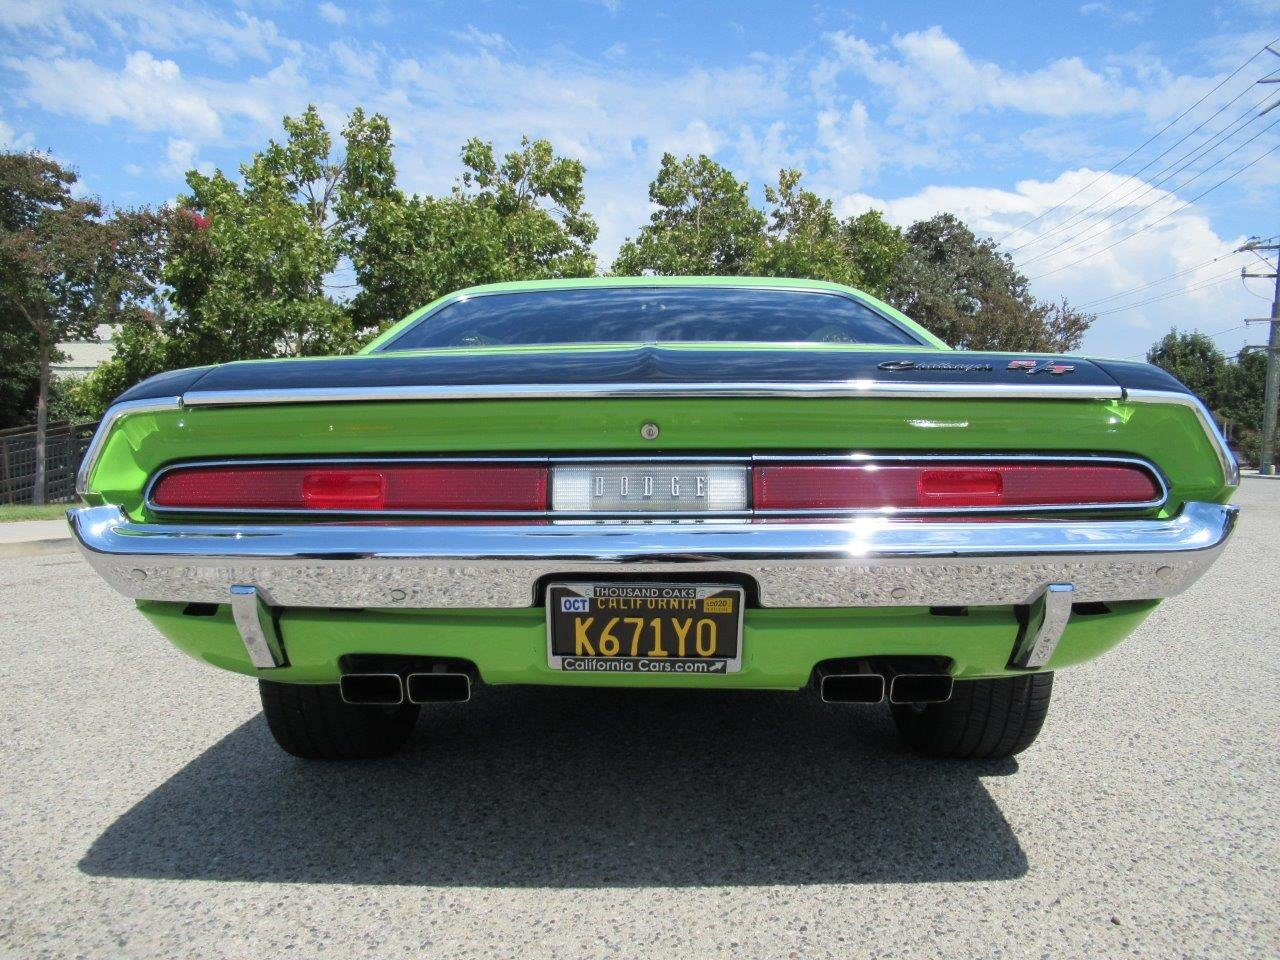 1970 DODGE CHALLENGER For Sale (picture 4 of 6)